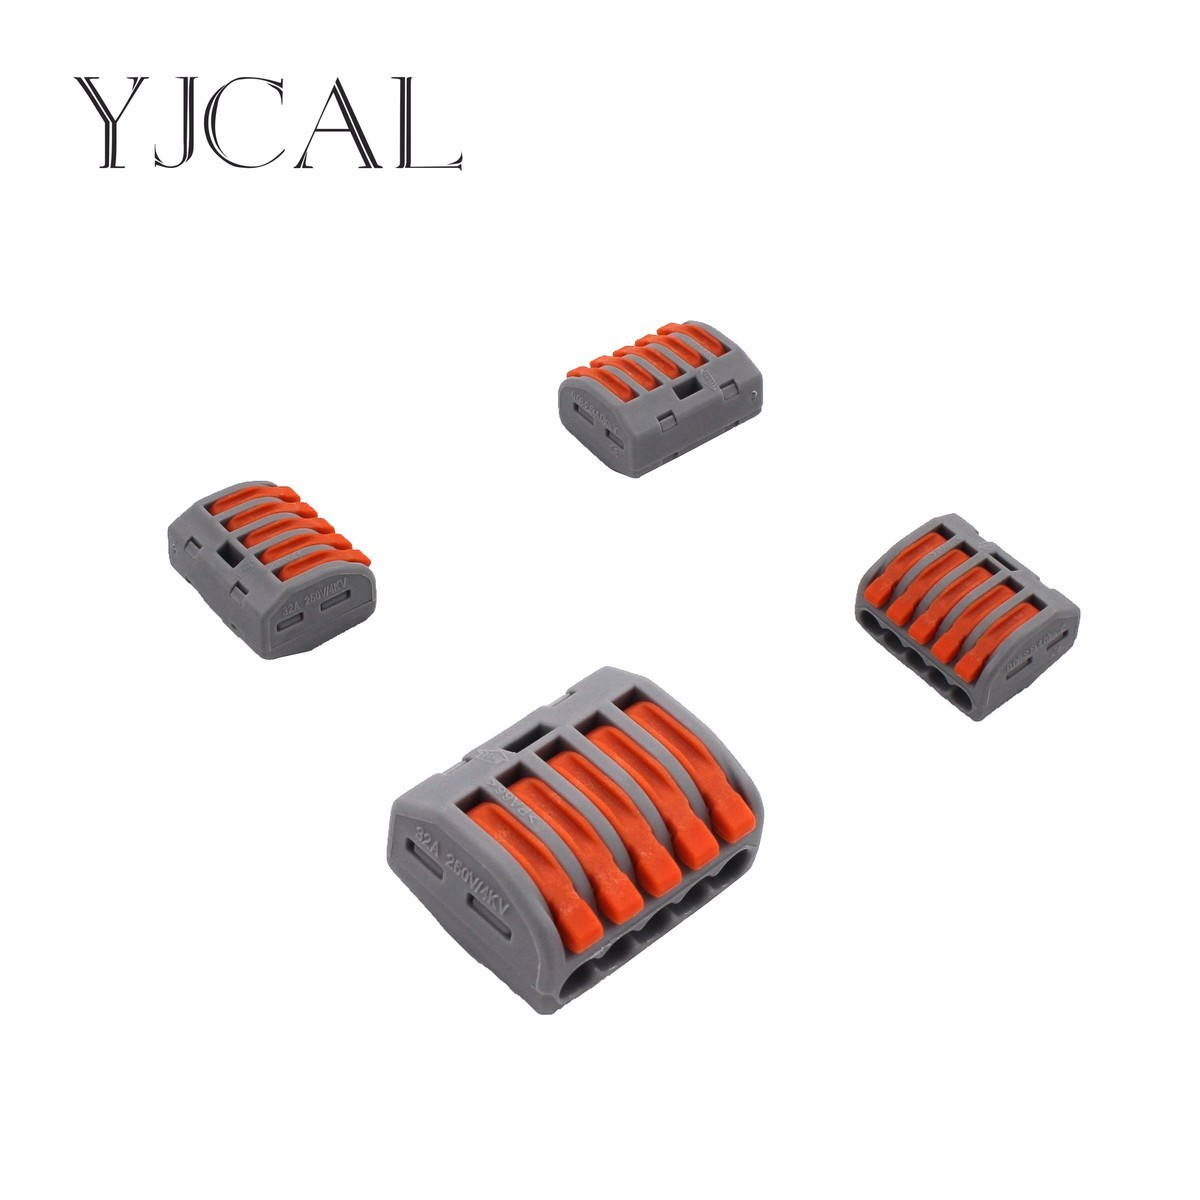 Wago Type 222-415 20PCS Universal Compact Wiring Conector Terminal Block Connectors Terminator Wire Connector AWG 28-12 10 pieces lot 222 413 universal compact wire wiring connector 3 pin conductor terminal block with lever awg 28 12